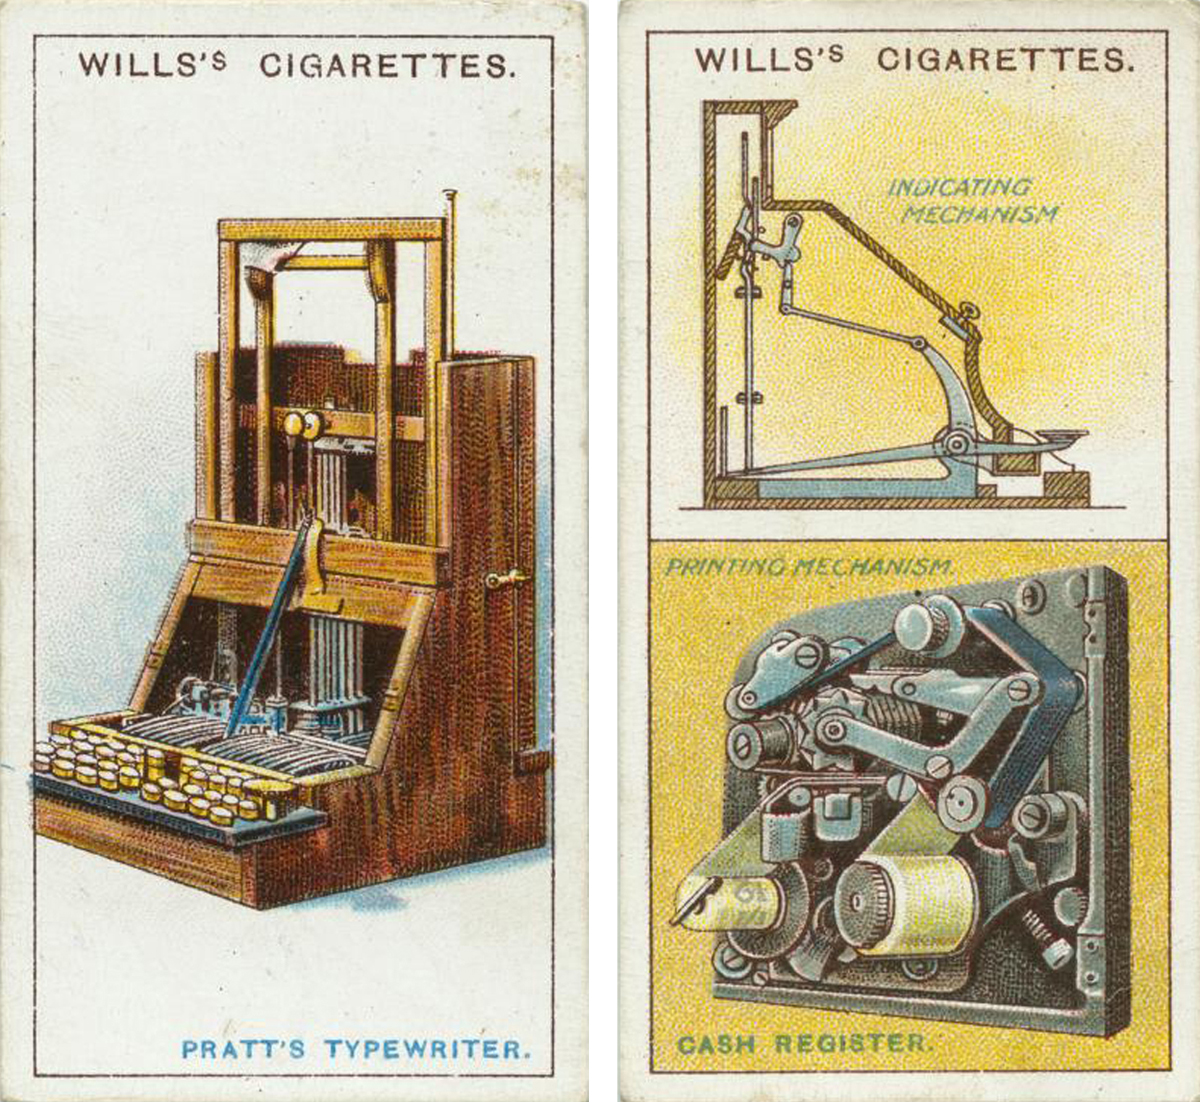 Wills Cigarettes Cards, showing famous inventions, including a cash register mechanism and Pratt's typewriter